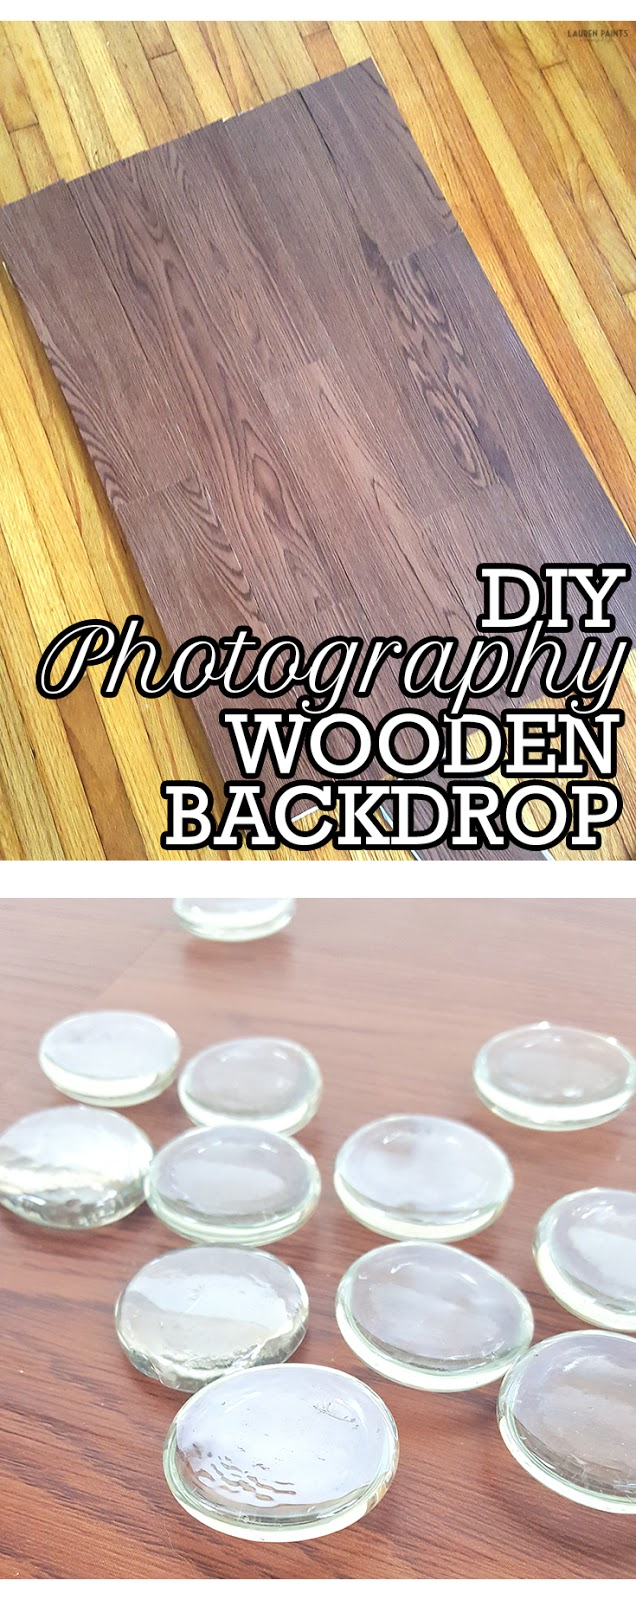 You can make this beautiful wooden back drop in minutes without breaking the bank & it's perfect for capturing a gorgeous photo of anything!